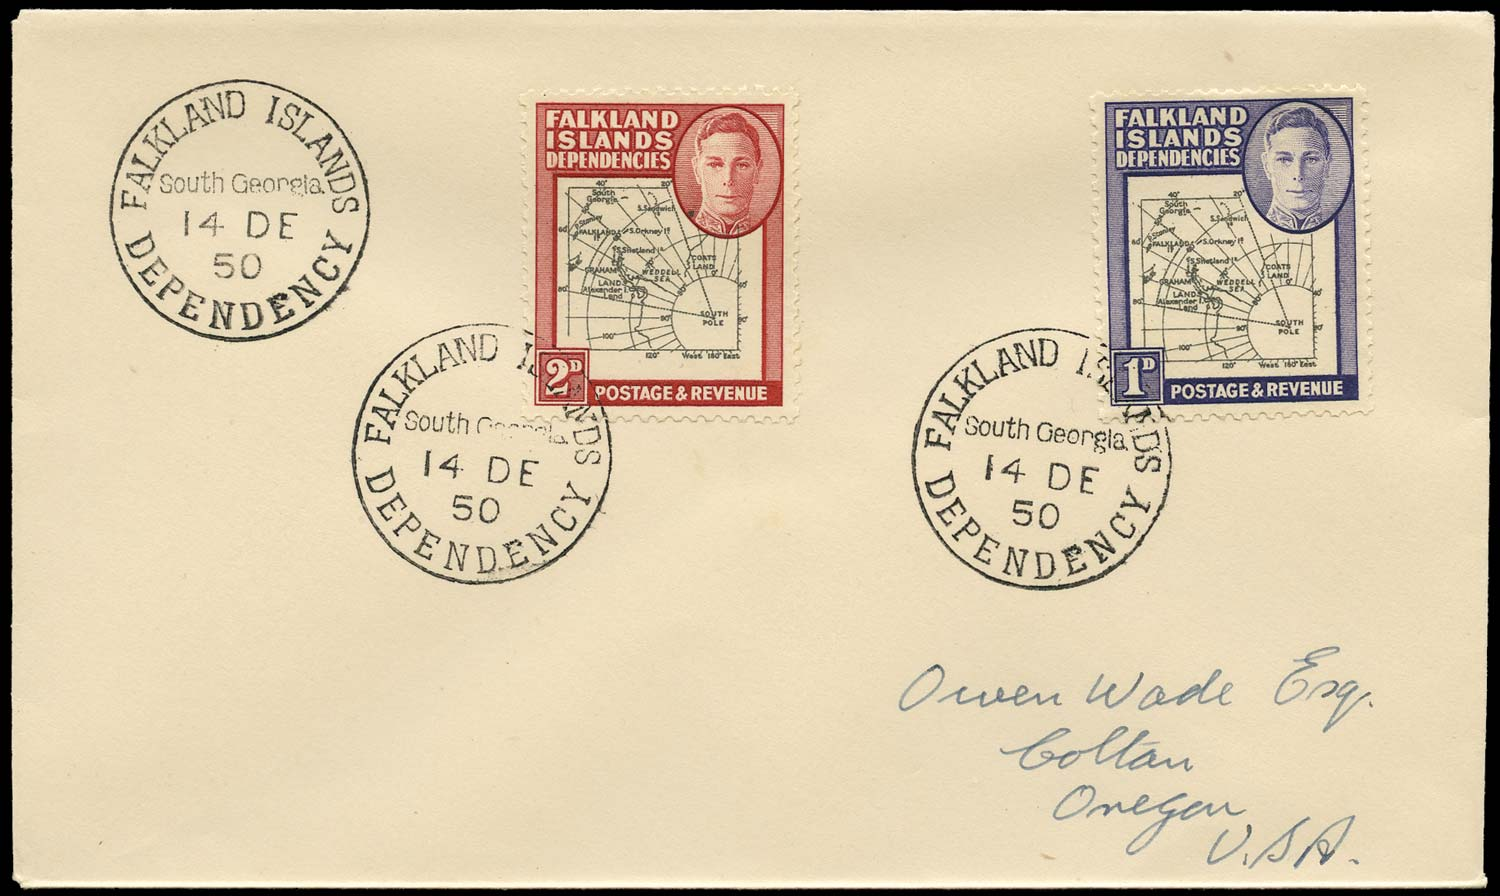 FALKLAND ISLAND DEPS 1950  SGG2, G3d Cover 2d variety Extra dot by oval